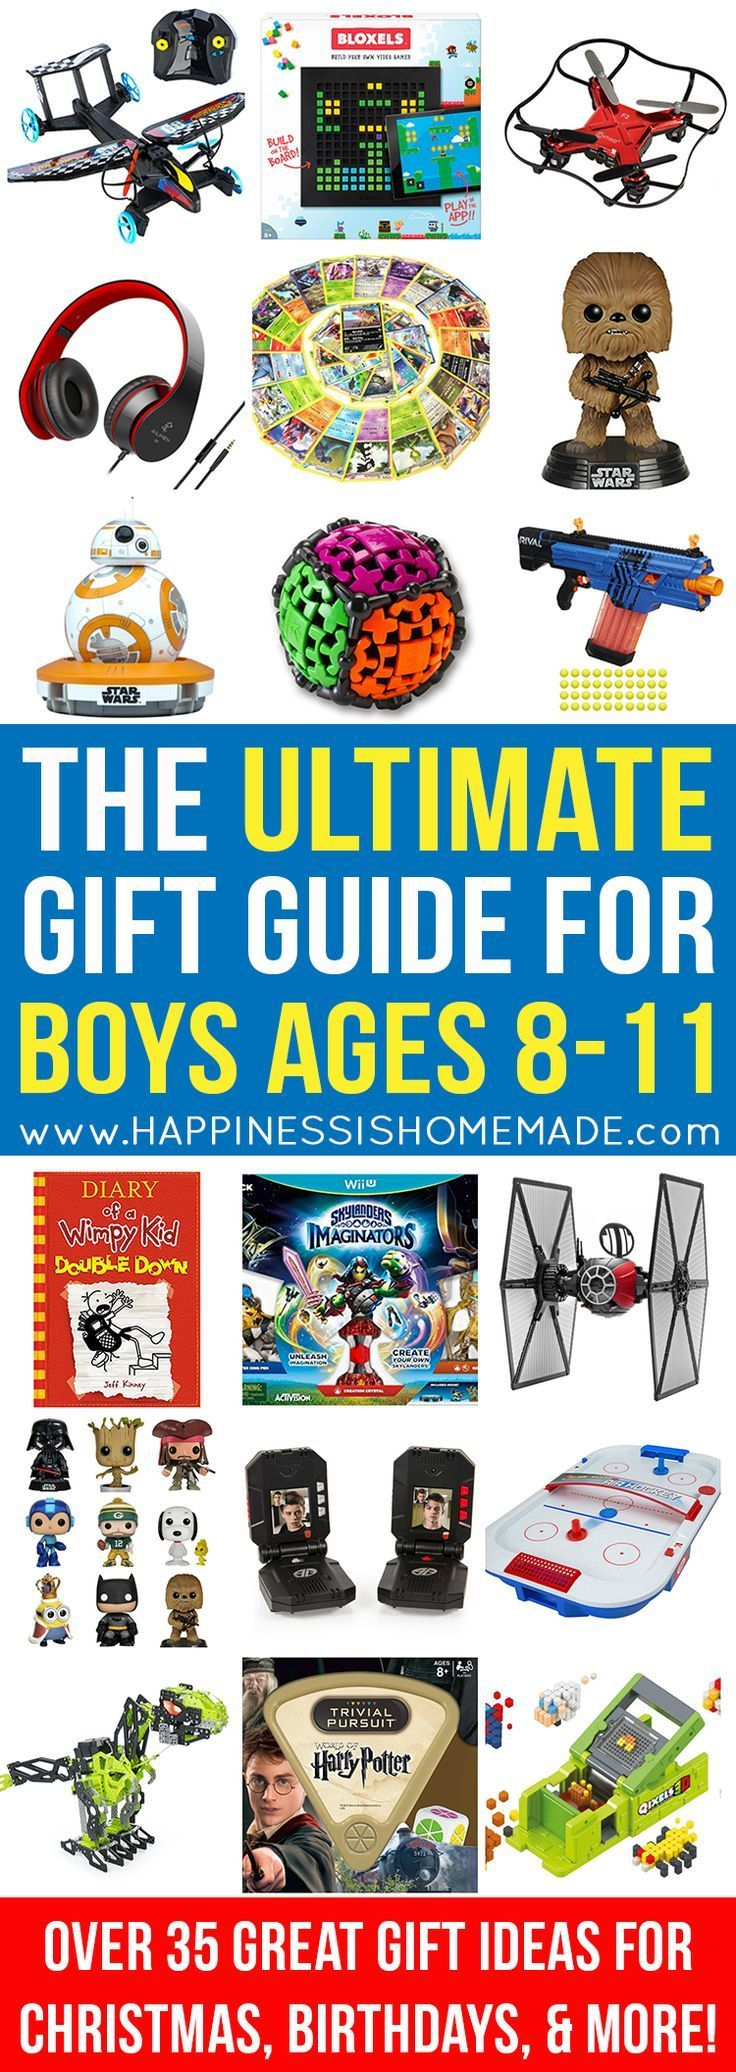 Toys For Ages 8 10 : Best images about toys for year old girls on